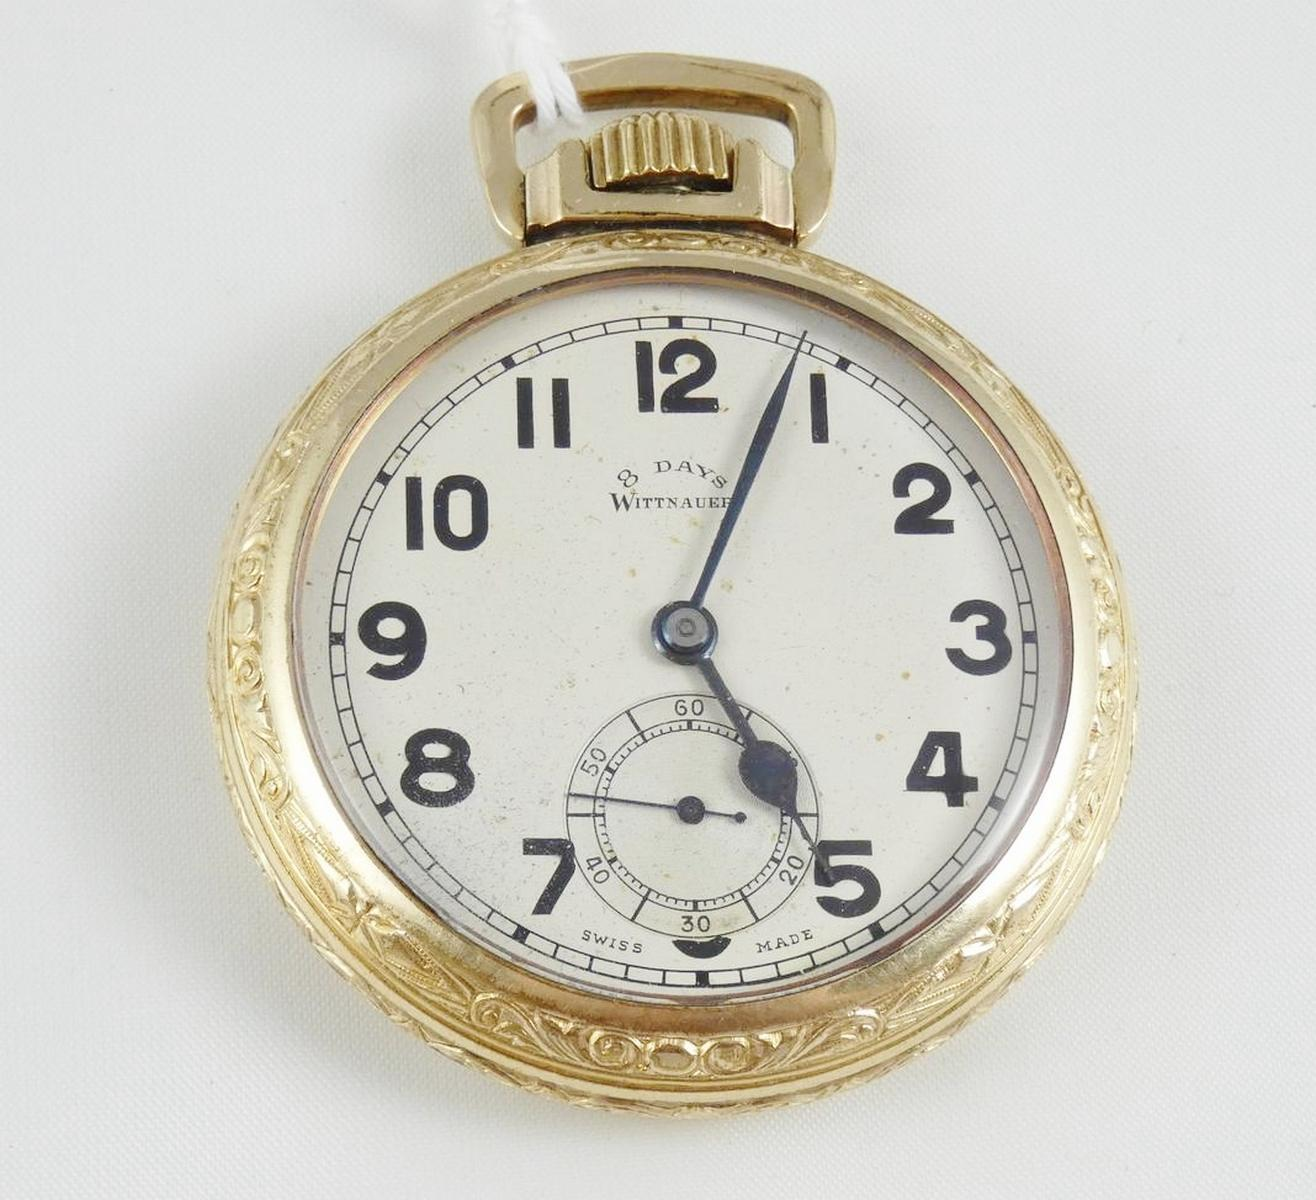 WITTNAUER POCKET WATCH